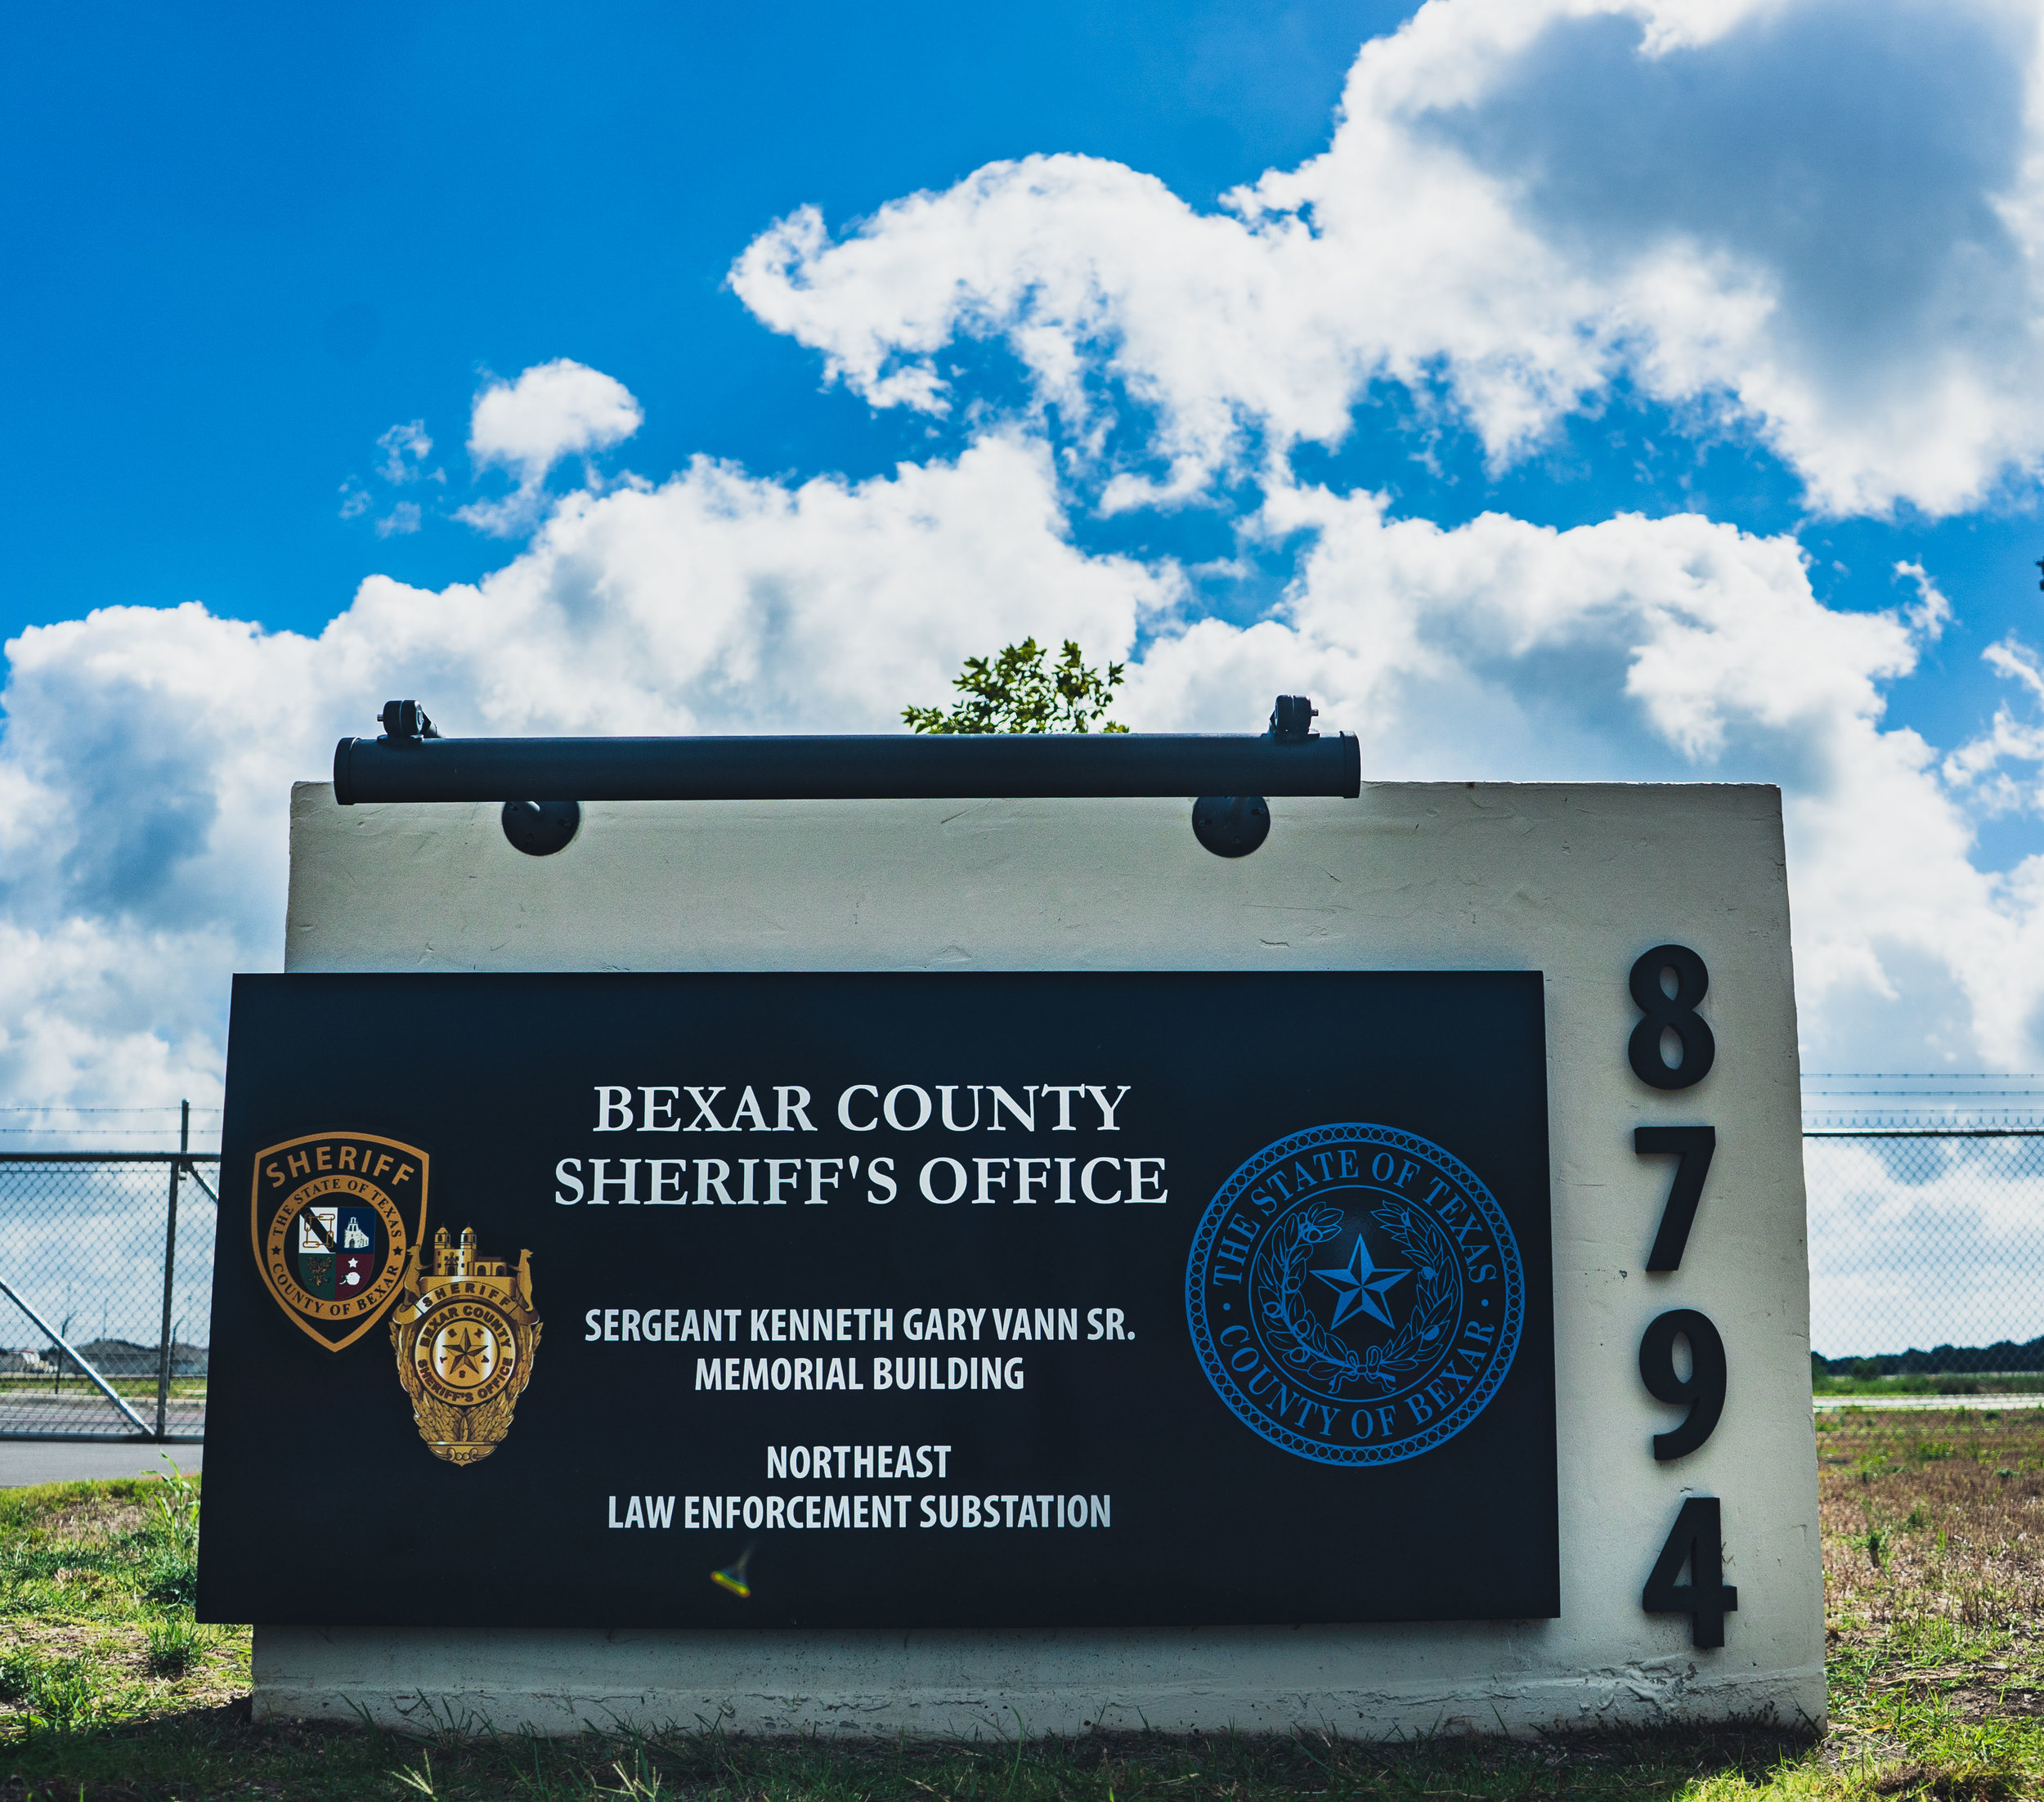 Bexar County Sheriff's Sub-station